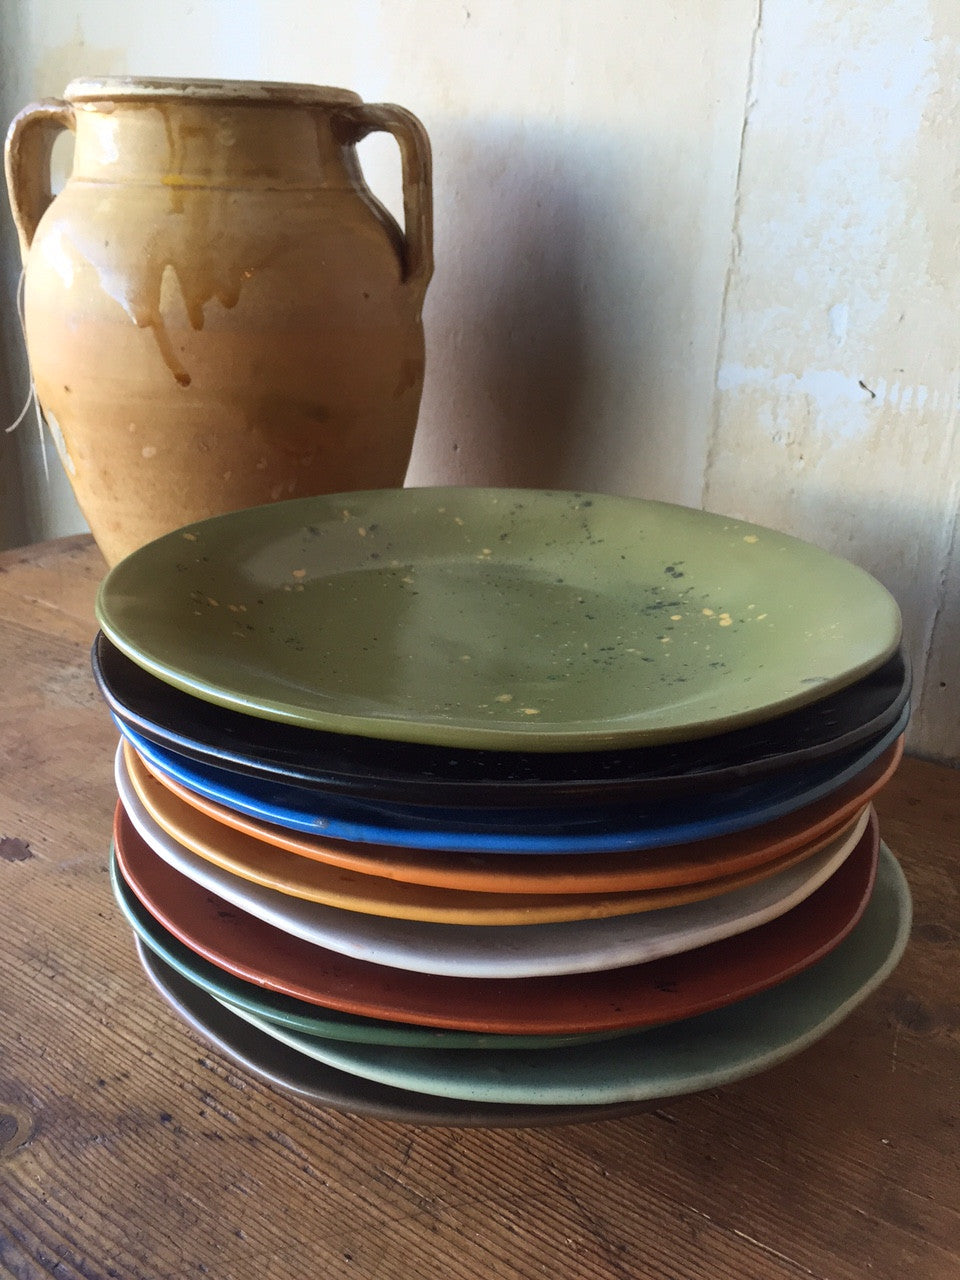 Colorful Dinner Plates - Mercato Antiques - 1 ... & Colorful Italian Dinner Plates